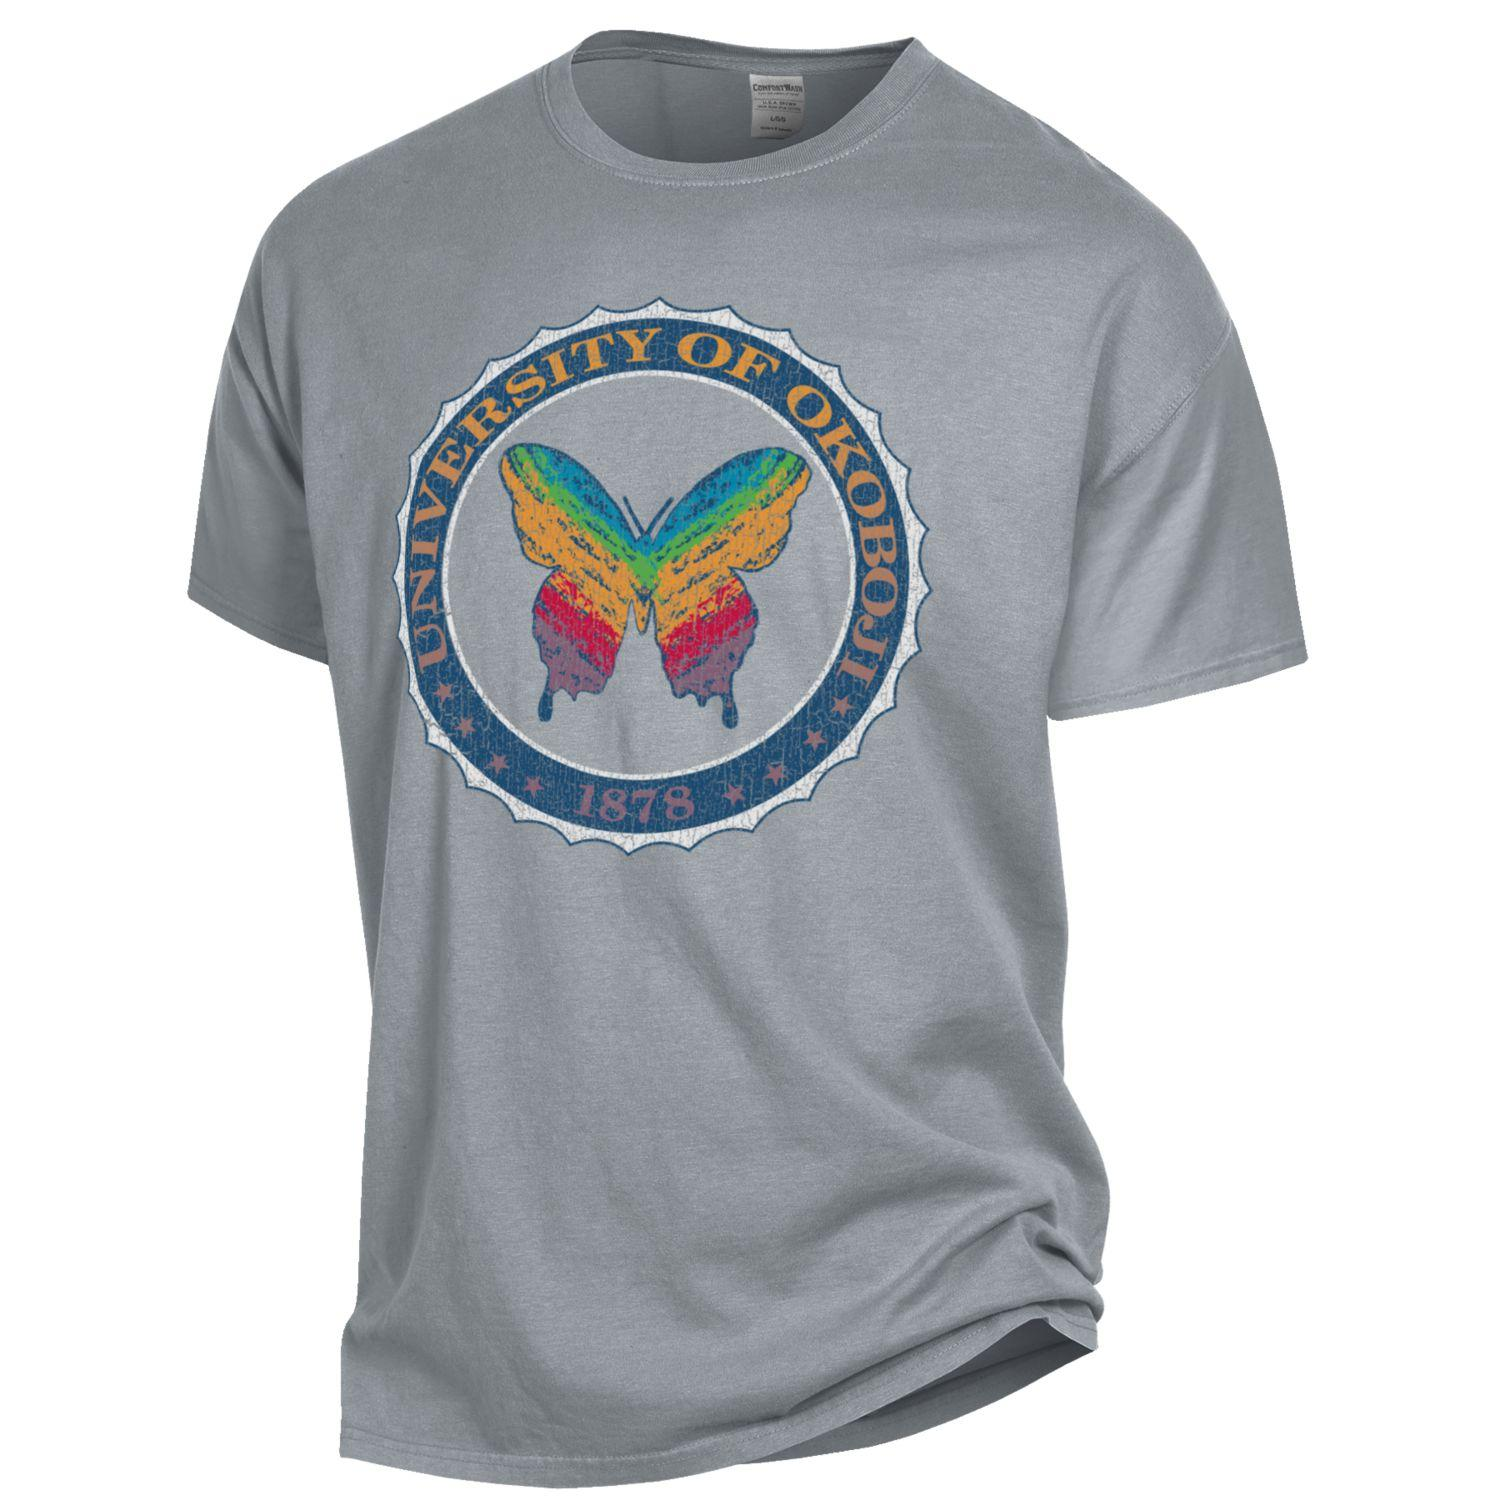 c350f6a86 OkoButterfly Tee - Garment Dyed Short Sleeve - Concrete Grey